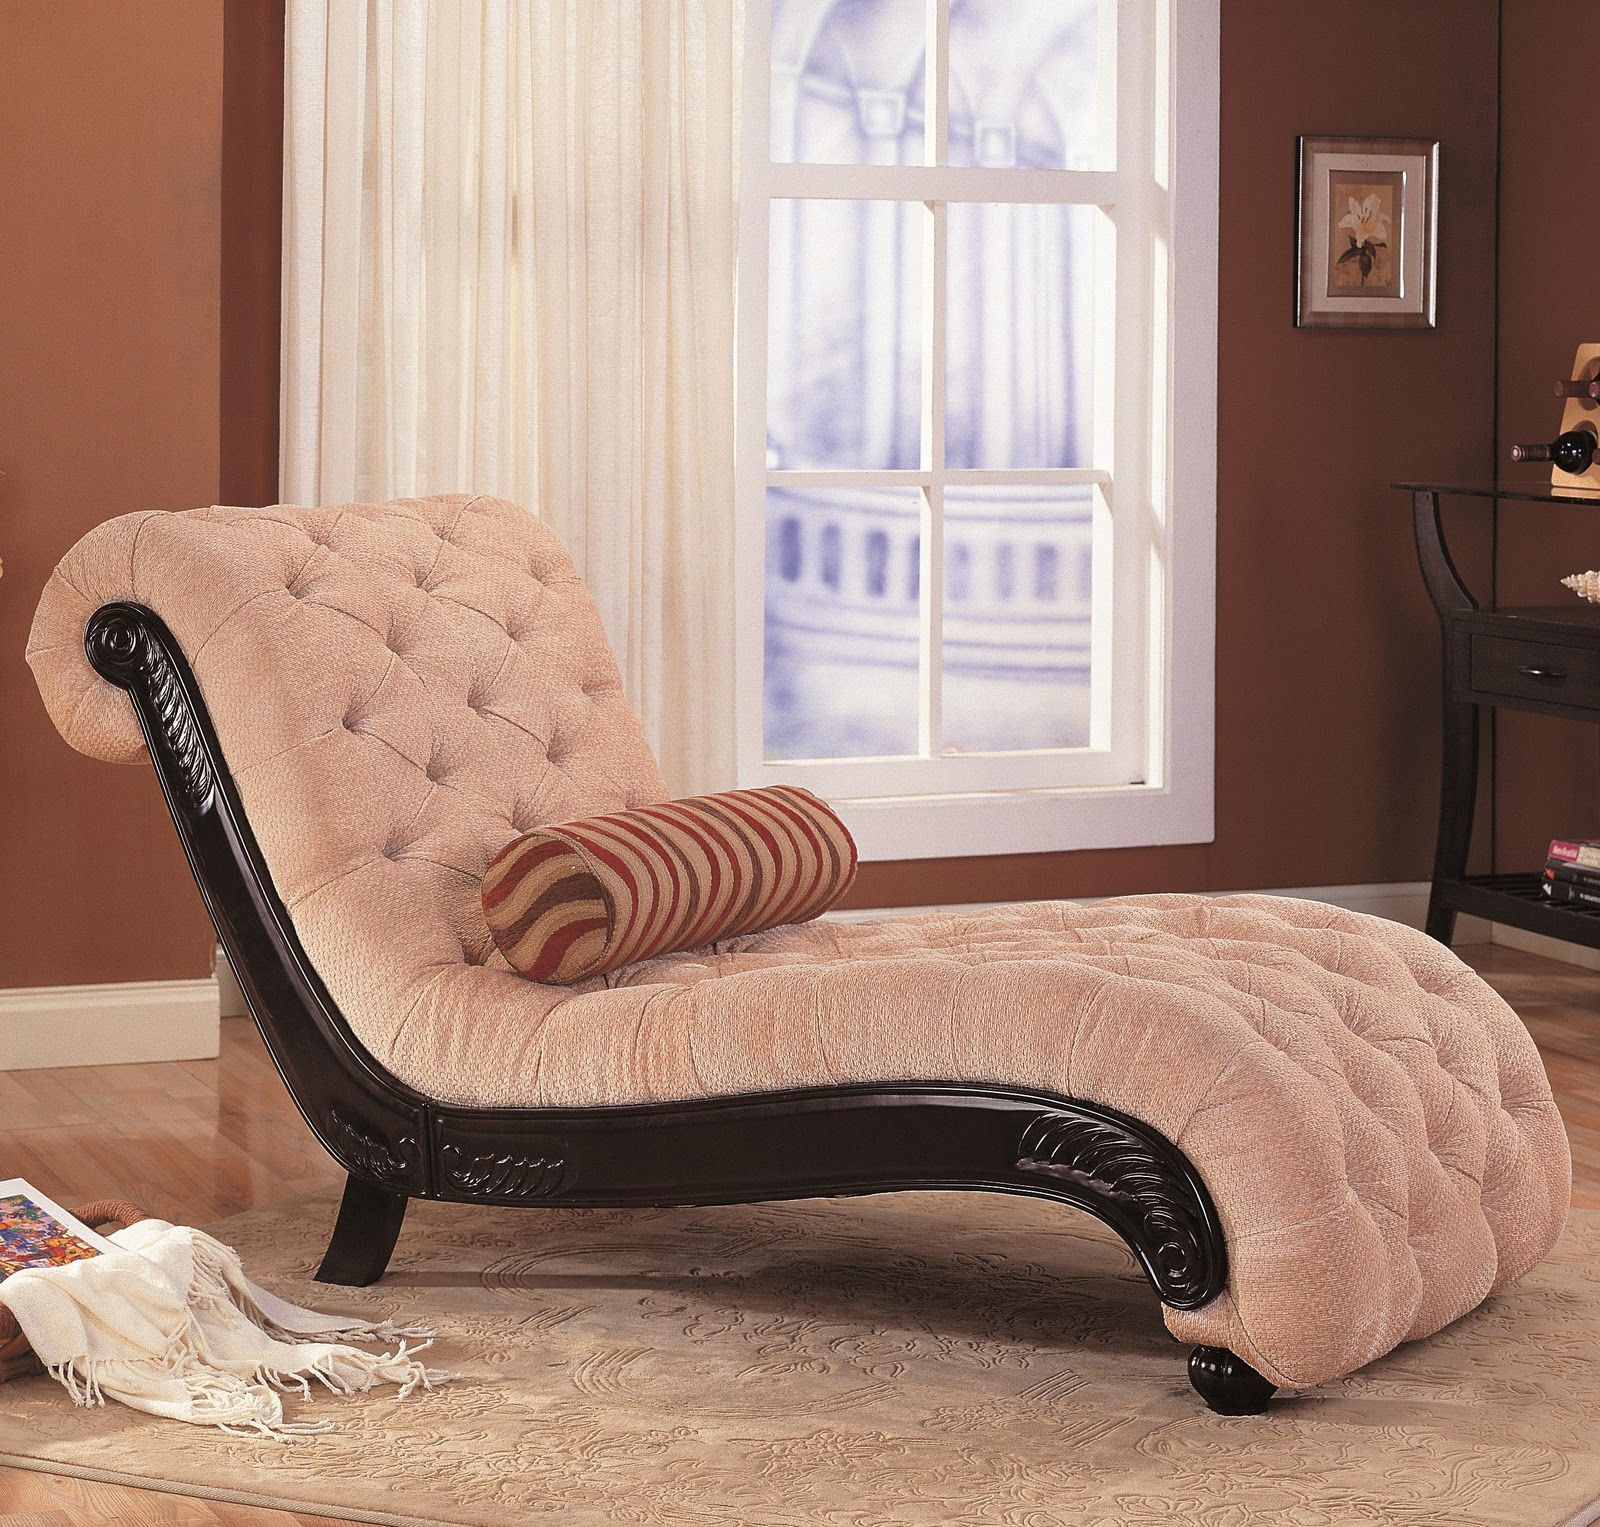 Coaster 550064n Chaise Royal Furniture Outlet 215 355 2880 Spotlight Item White Chaise Lounge Lounge Chair Bedroom Furniture